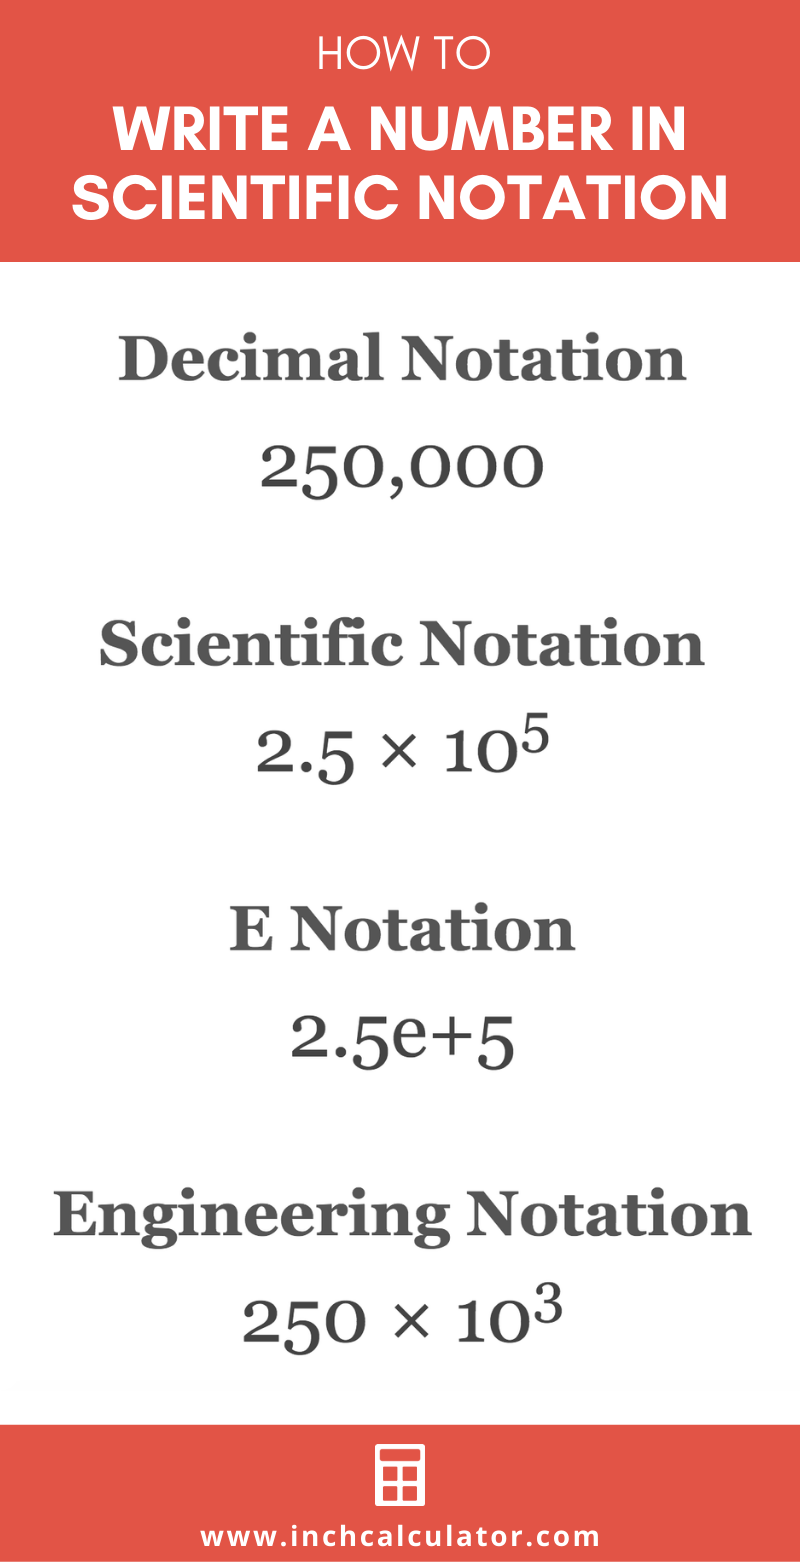 Share scientific notation calculator and converter